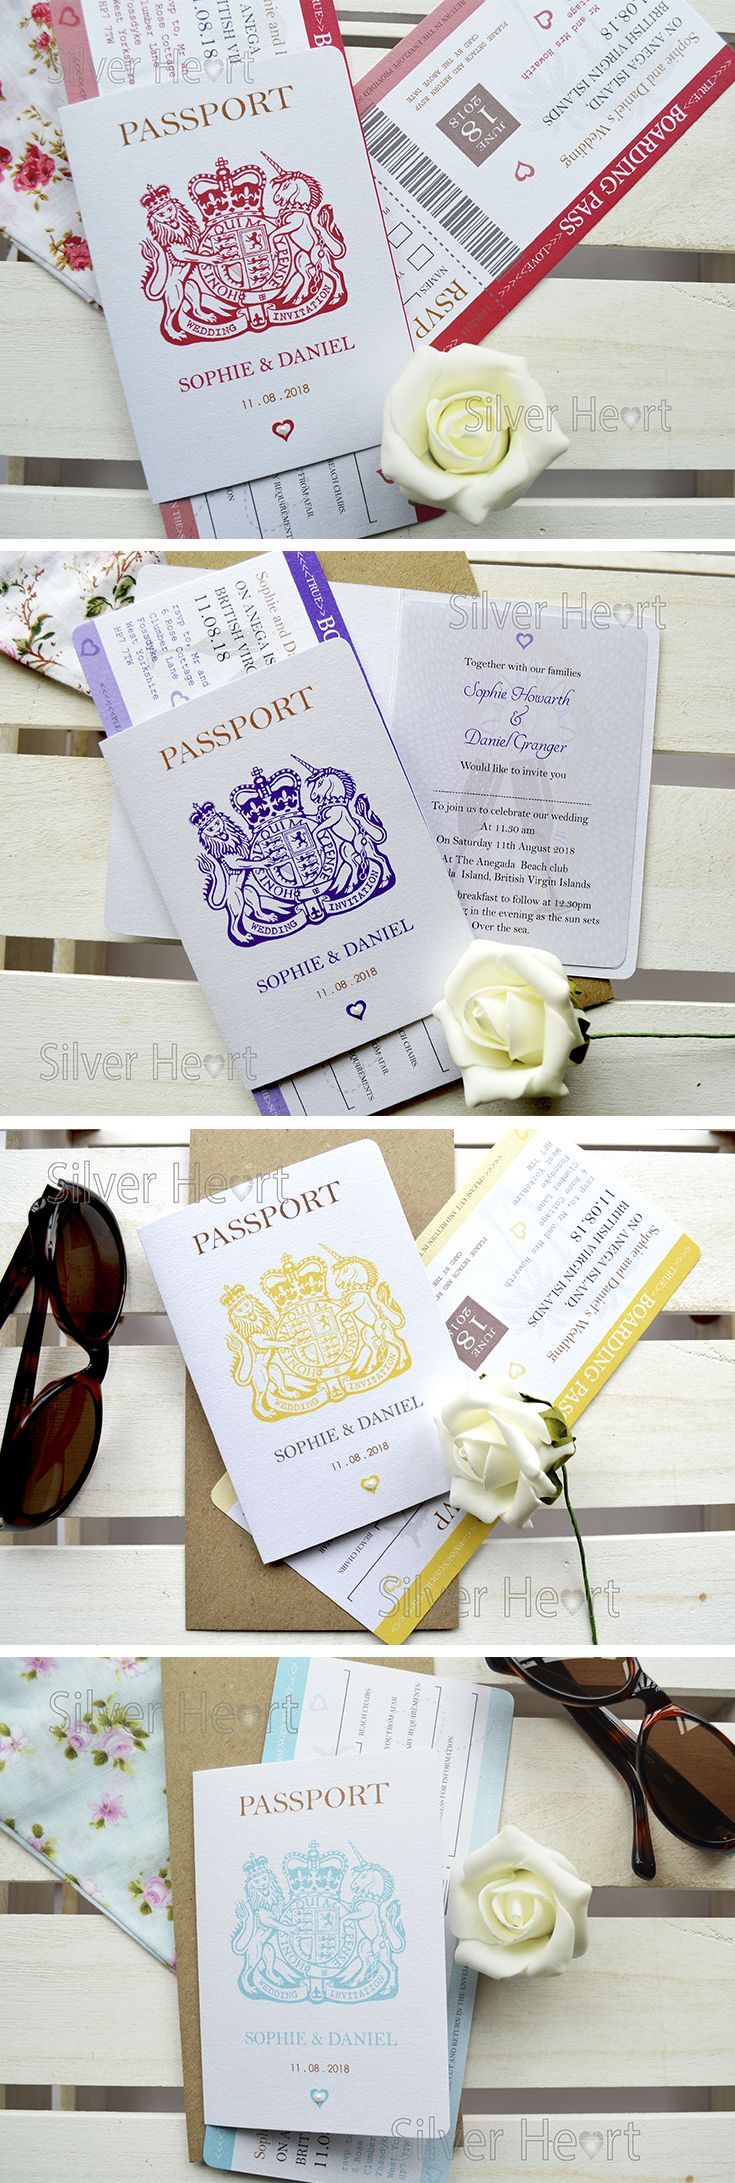 Pearl Passport Wedding Invitations and Boarding Pass RSVP with seed ...